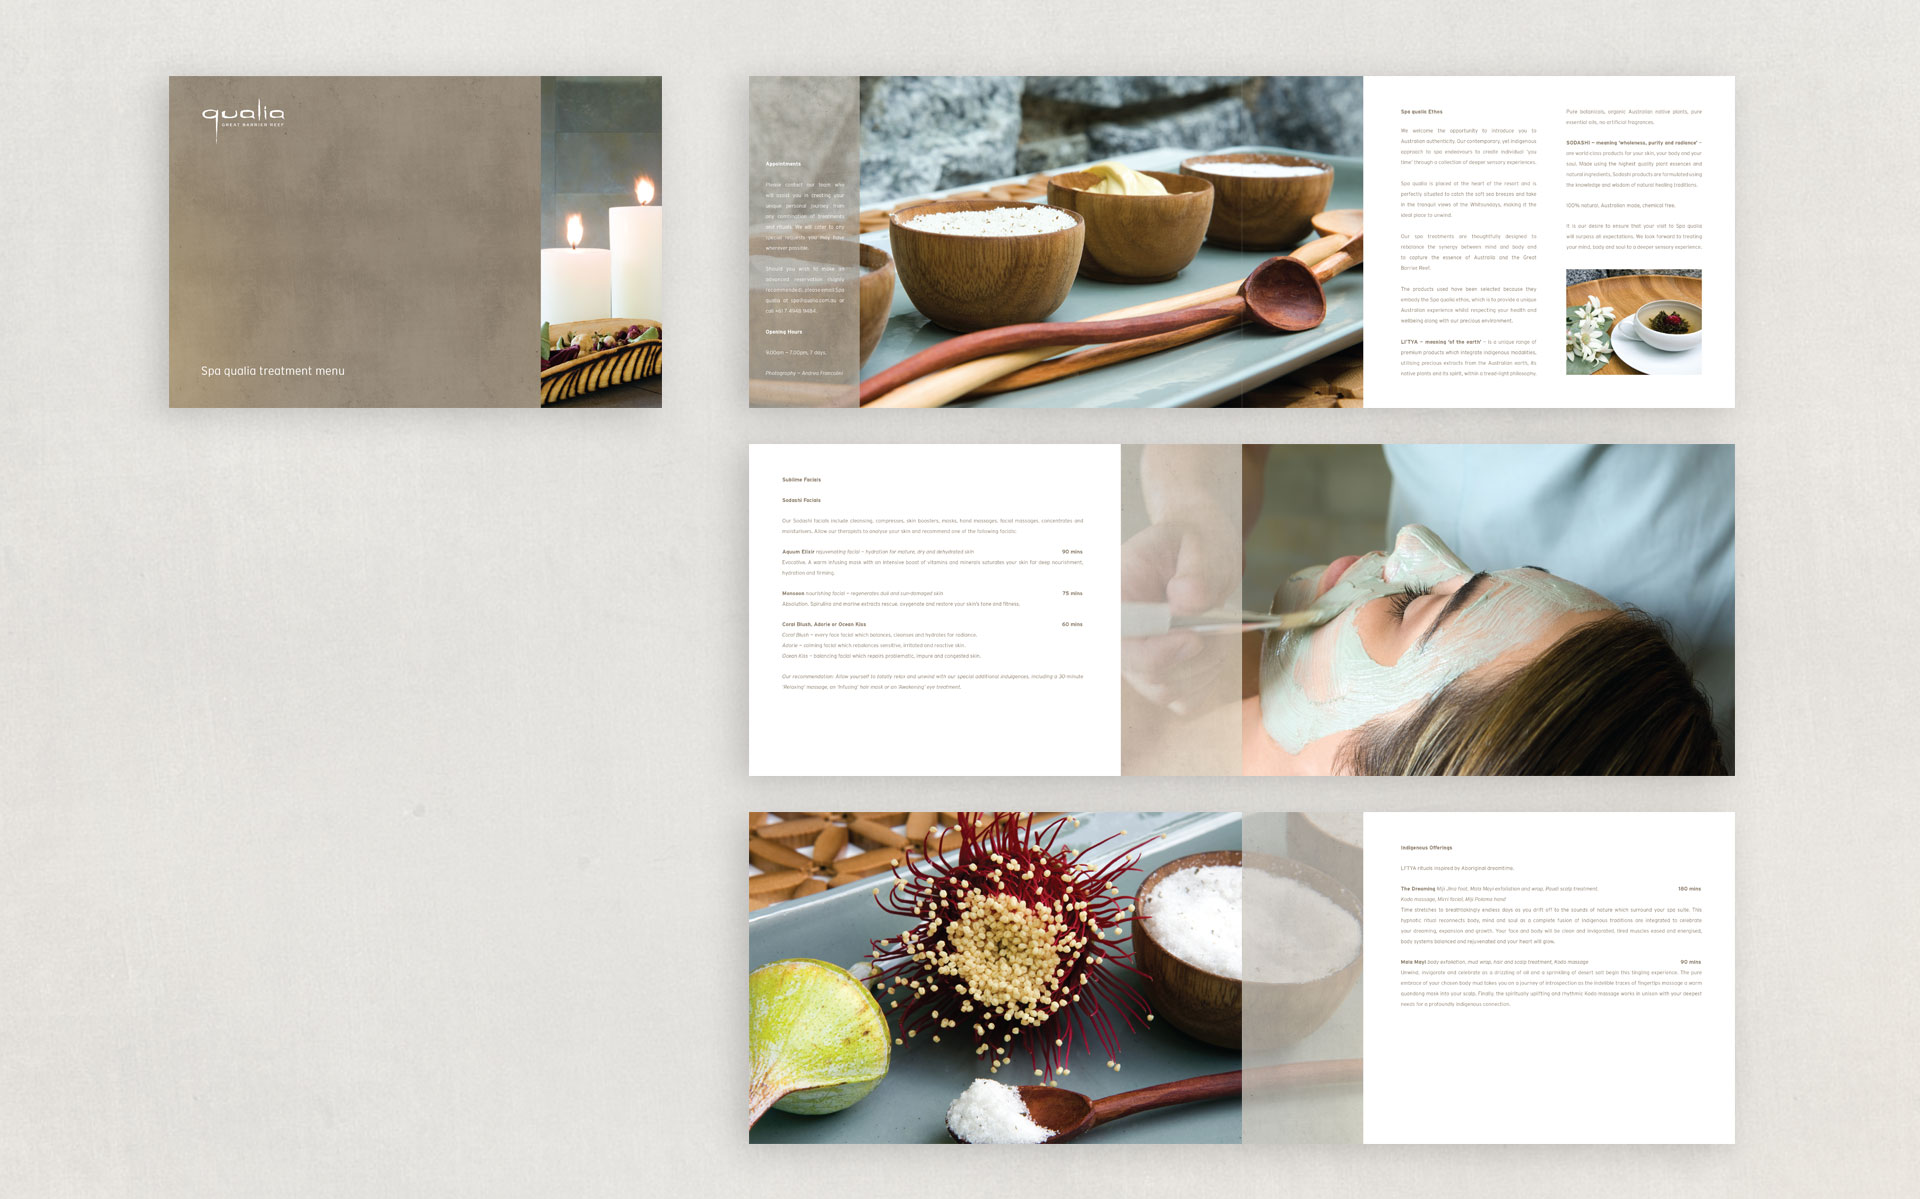 qualia marketing, publications & advertising designed by Amy Howard